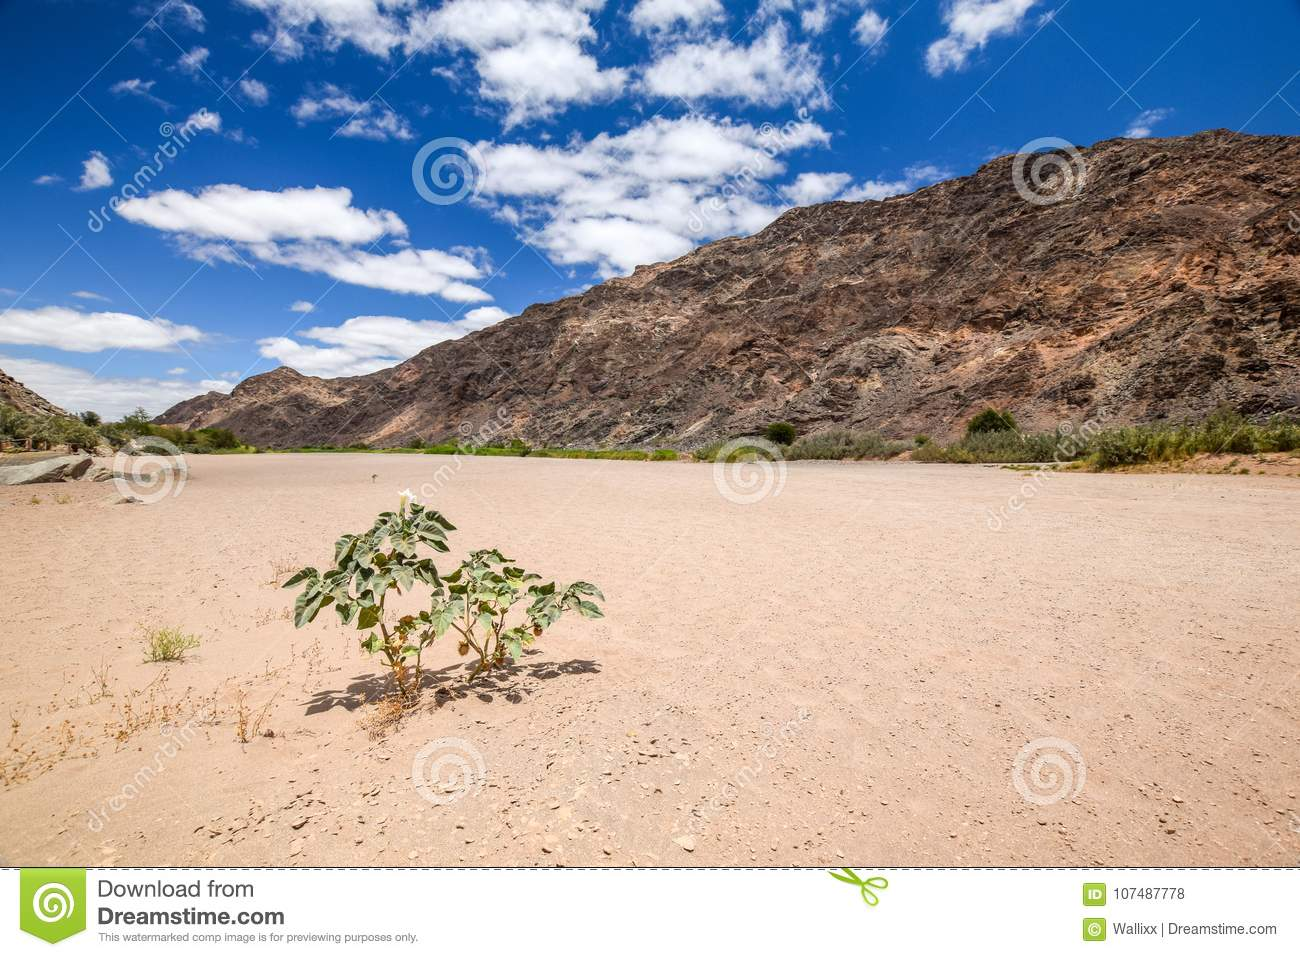 Panoramic view of the dry riverbed and a plant near Ai-Ais Hot Springs at Fish River Canyon, Namibia